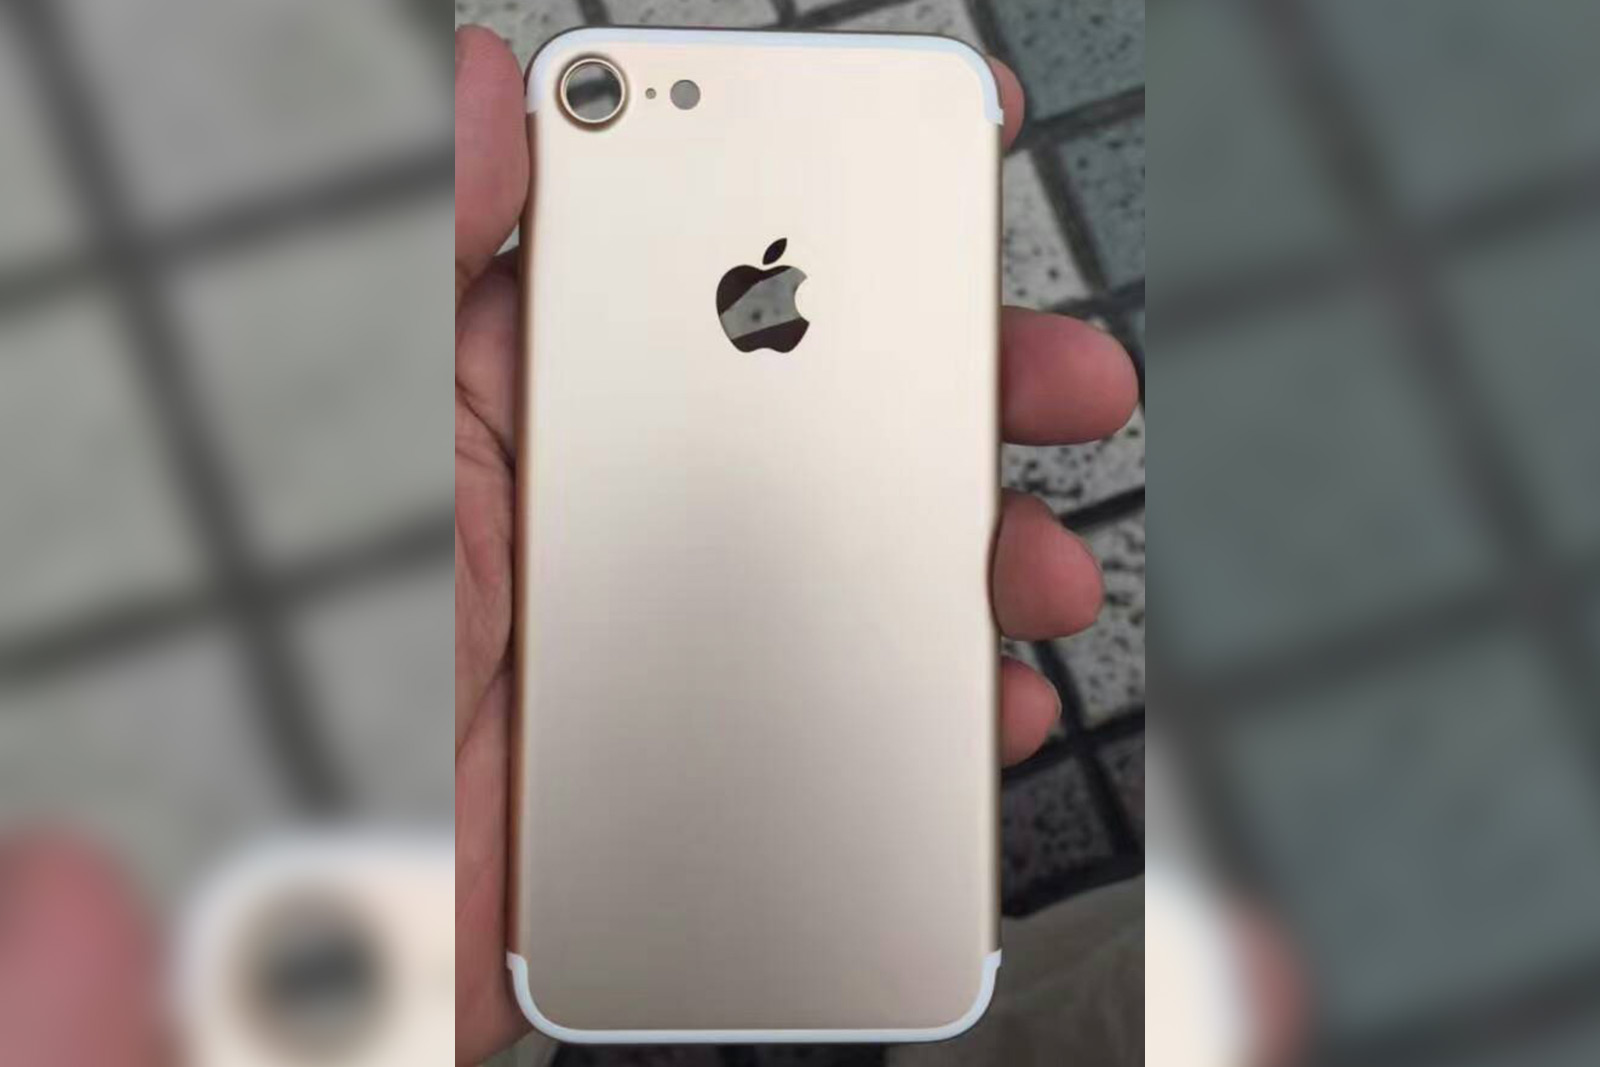 iPhone 7 spy shot offers a clearer look at its camera